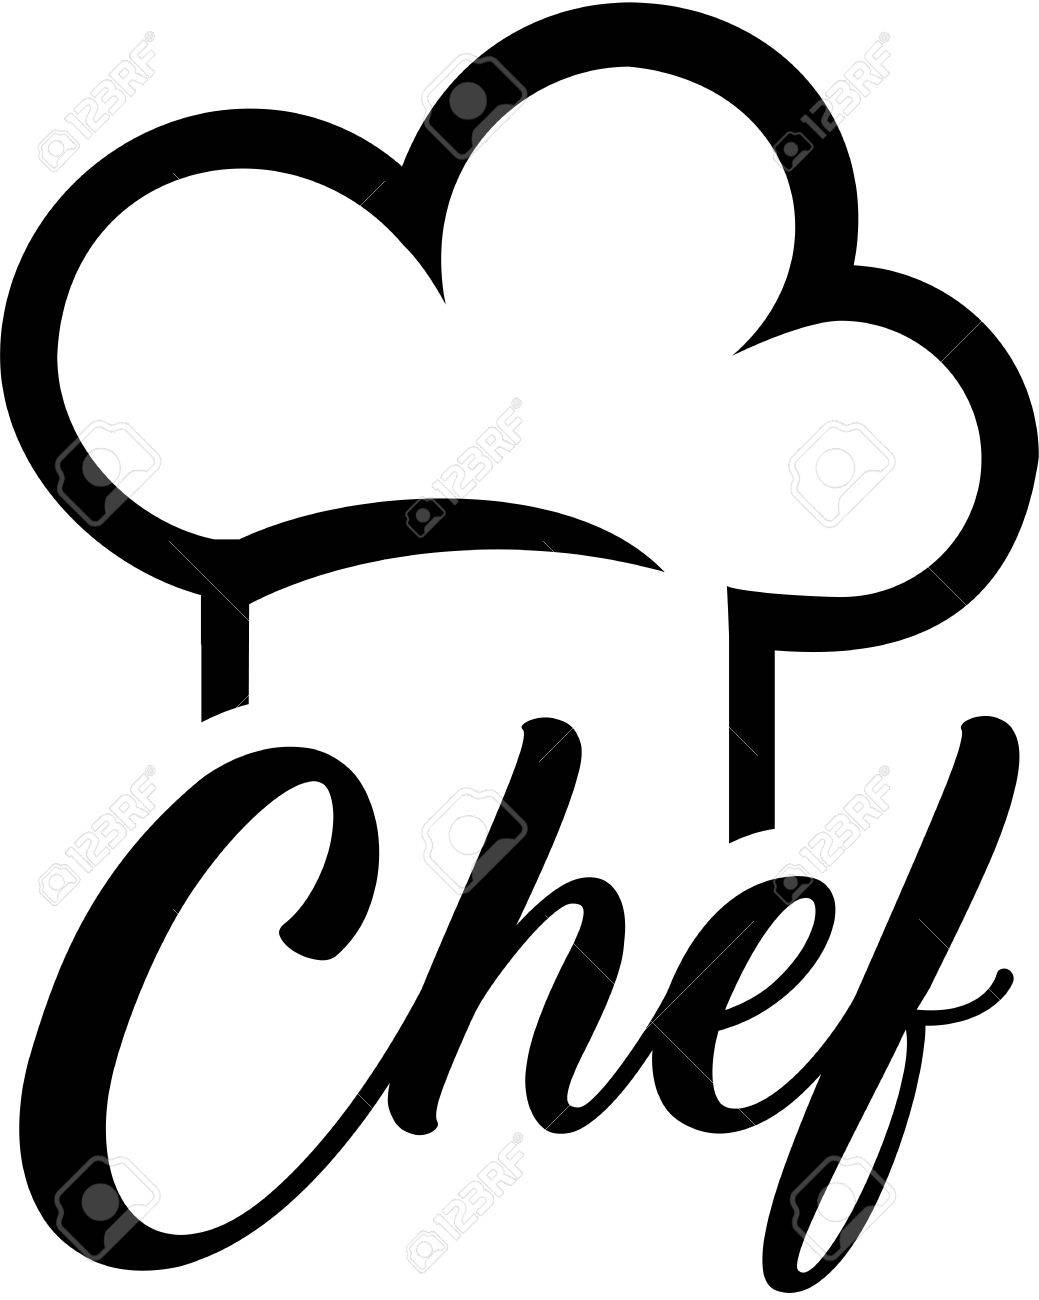 chef hat with chef word royalty free cliparts vectors and stock rh 123rf com chef hat clip art images chef hat clipart transparent